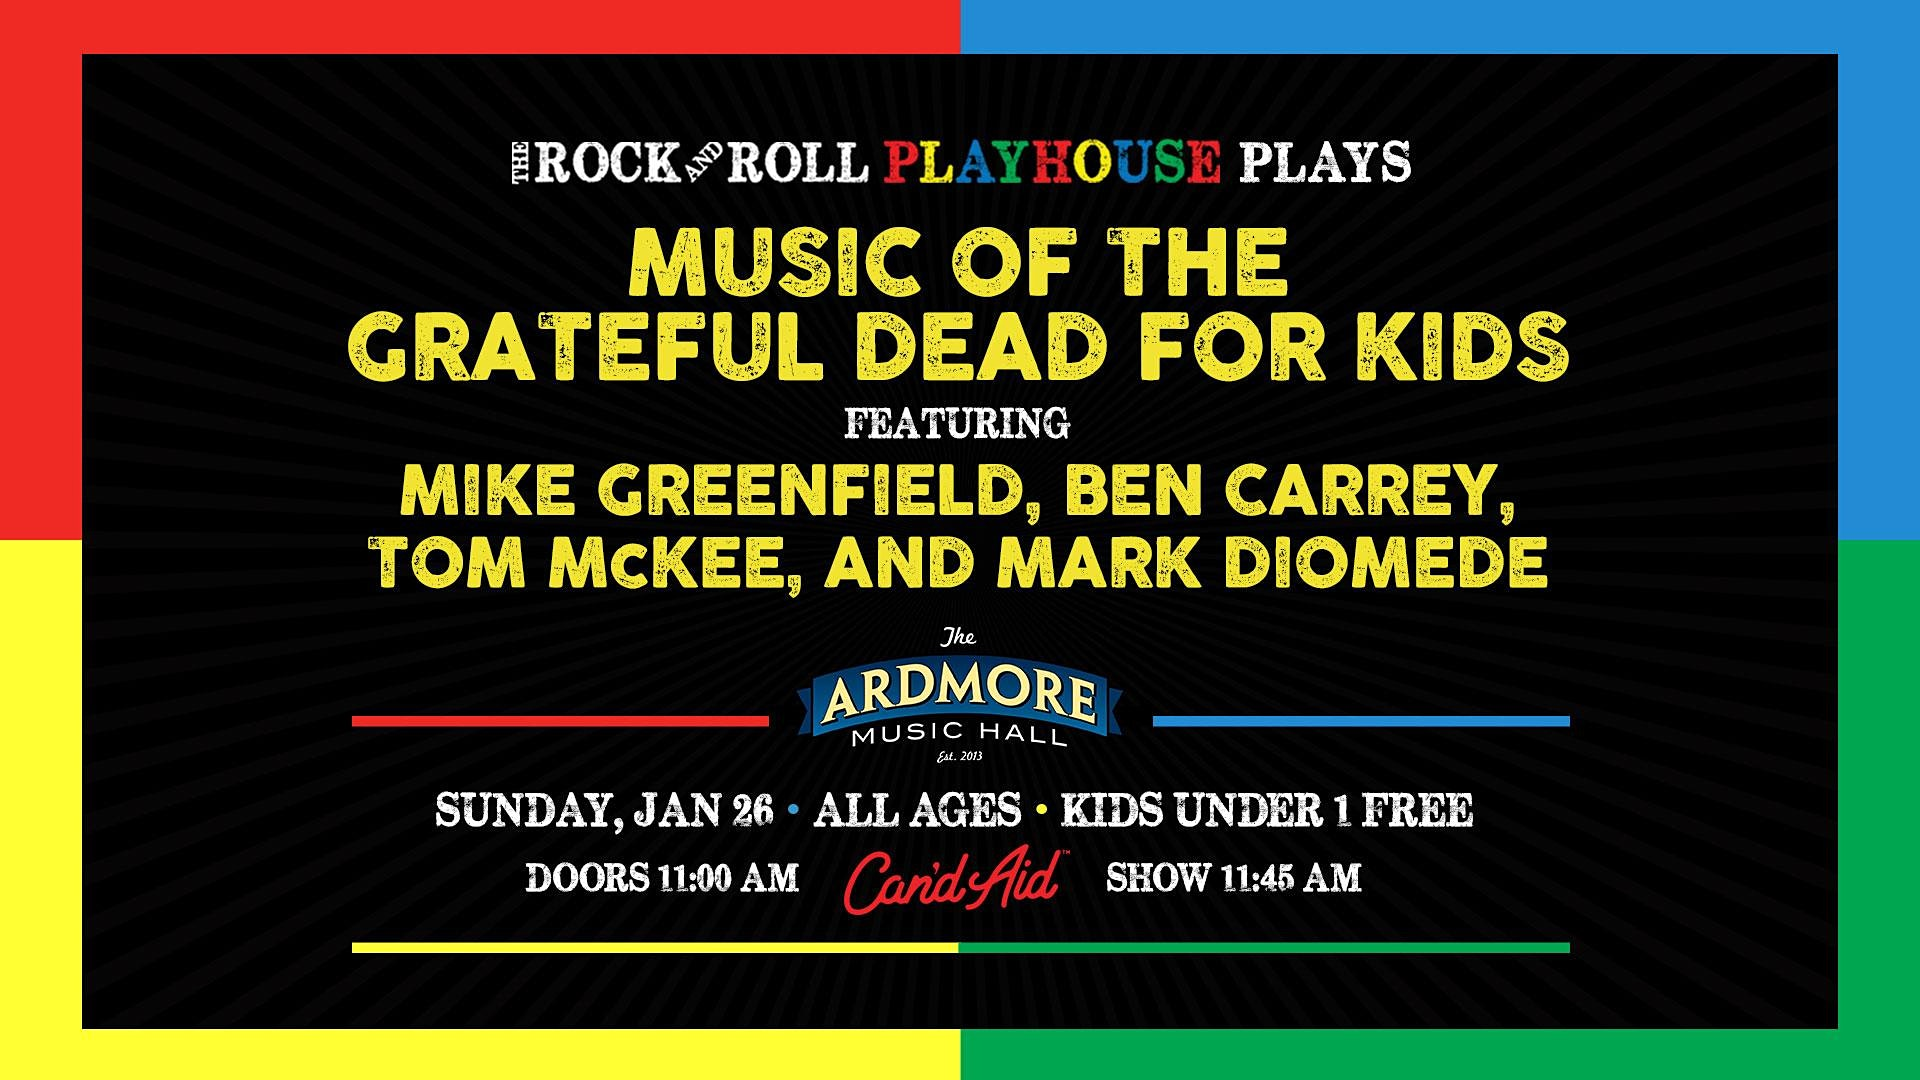 Music of the Grateful Dead for Kids - Tickets - The Ardmore Music Hall - Ardmore, PA - January 26th, 2020